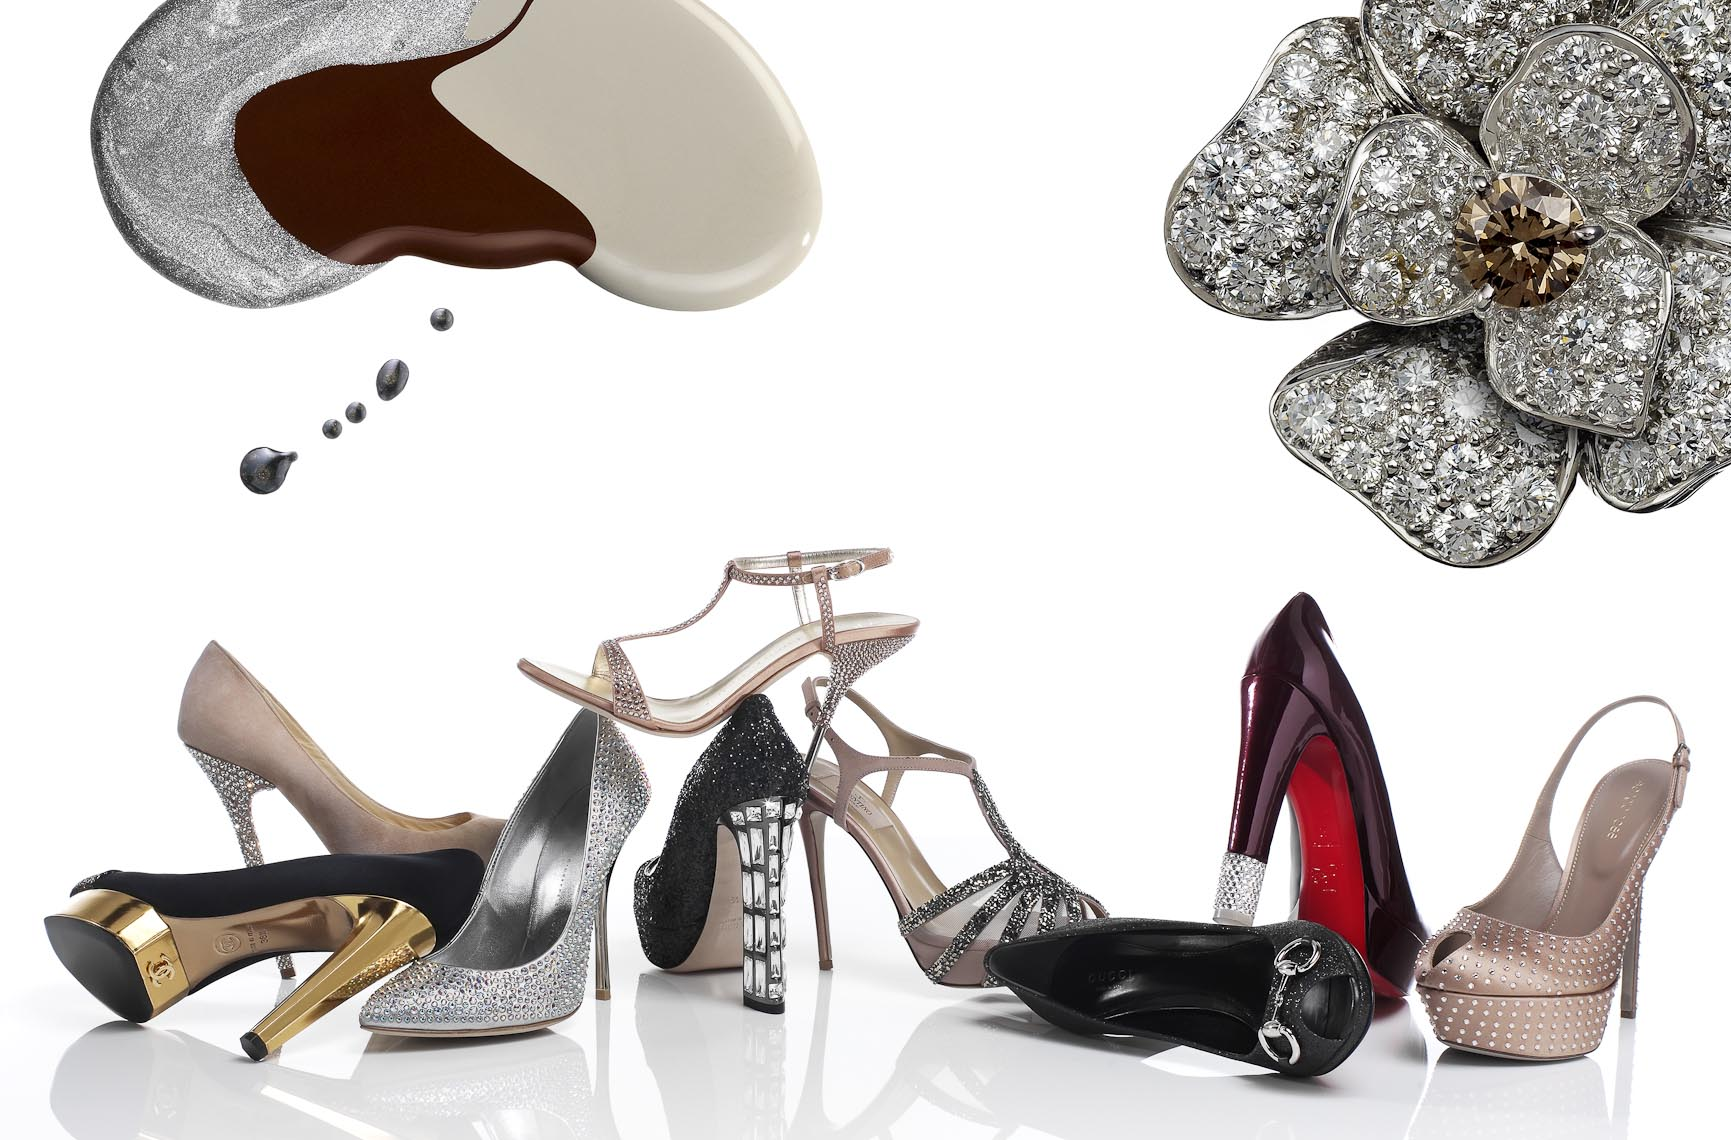 Accessories Still Life, High Heels on White